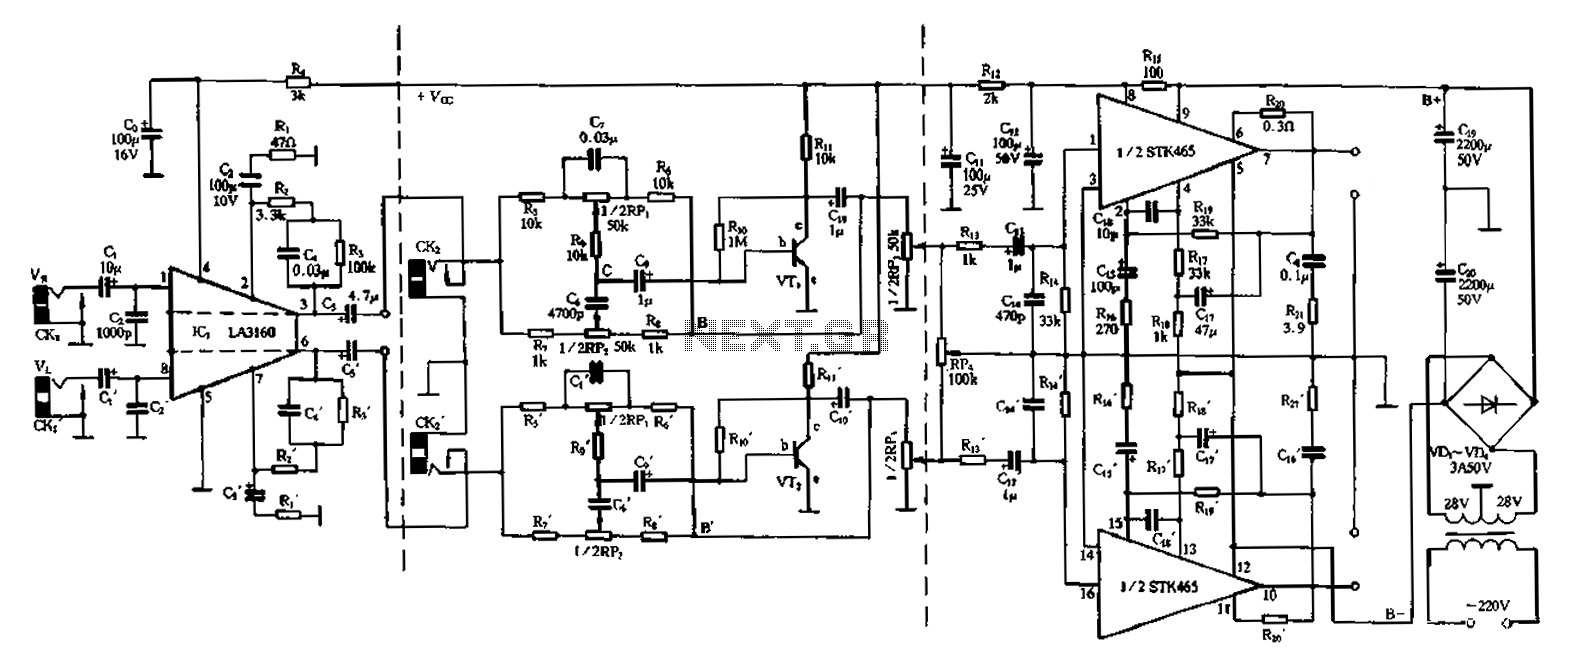 Audio Amplifier Circuit Page 3 Circuits Tda2002 8w Car Radio Power 50wx2